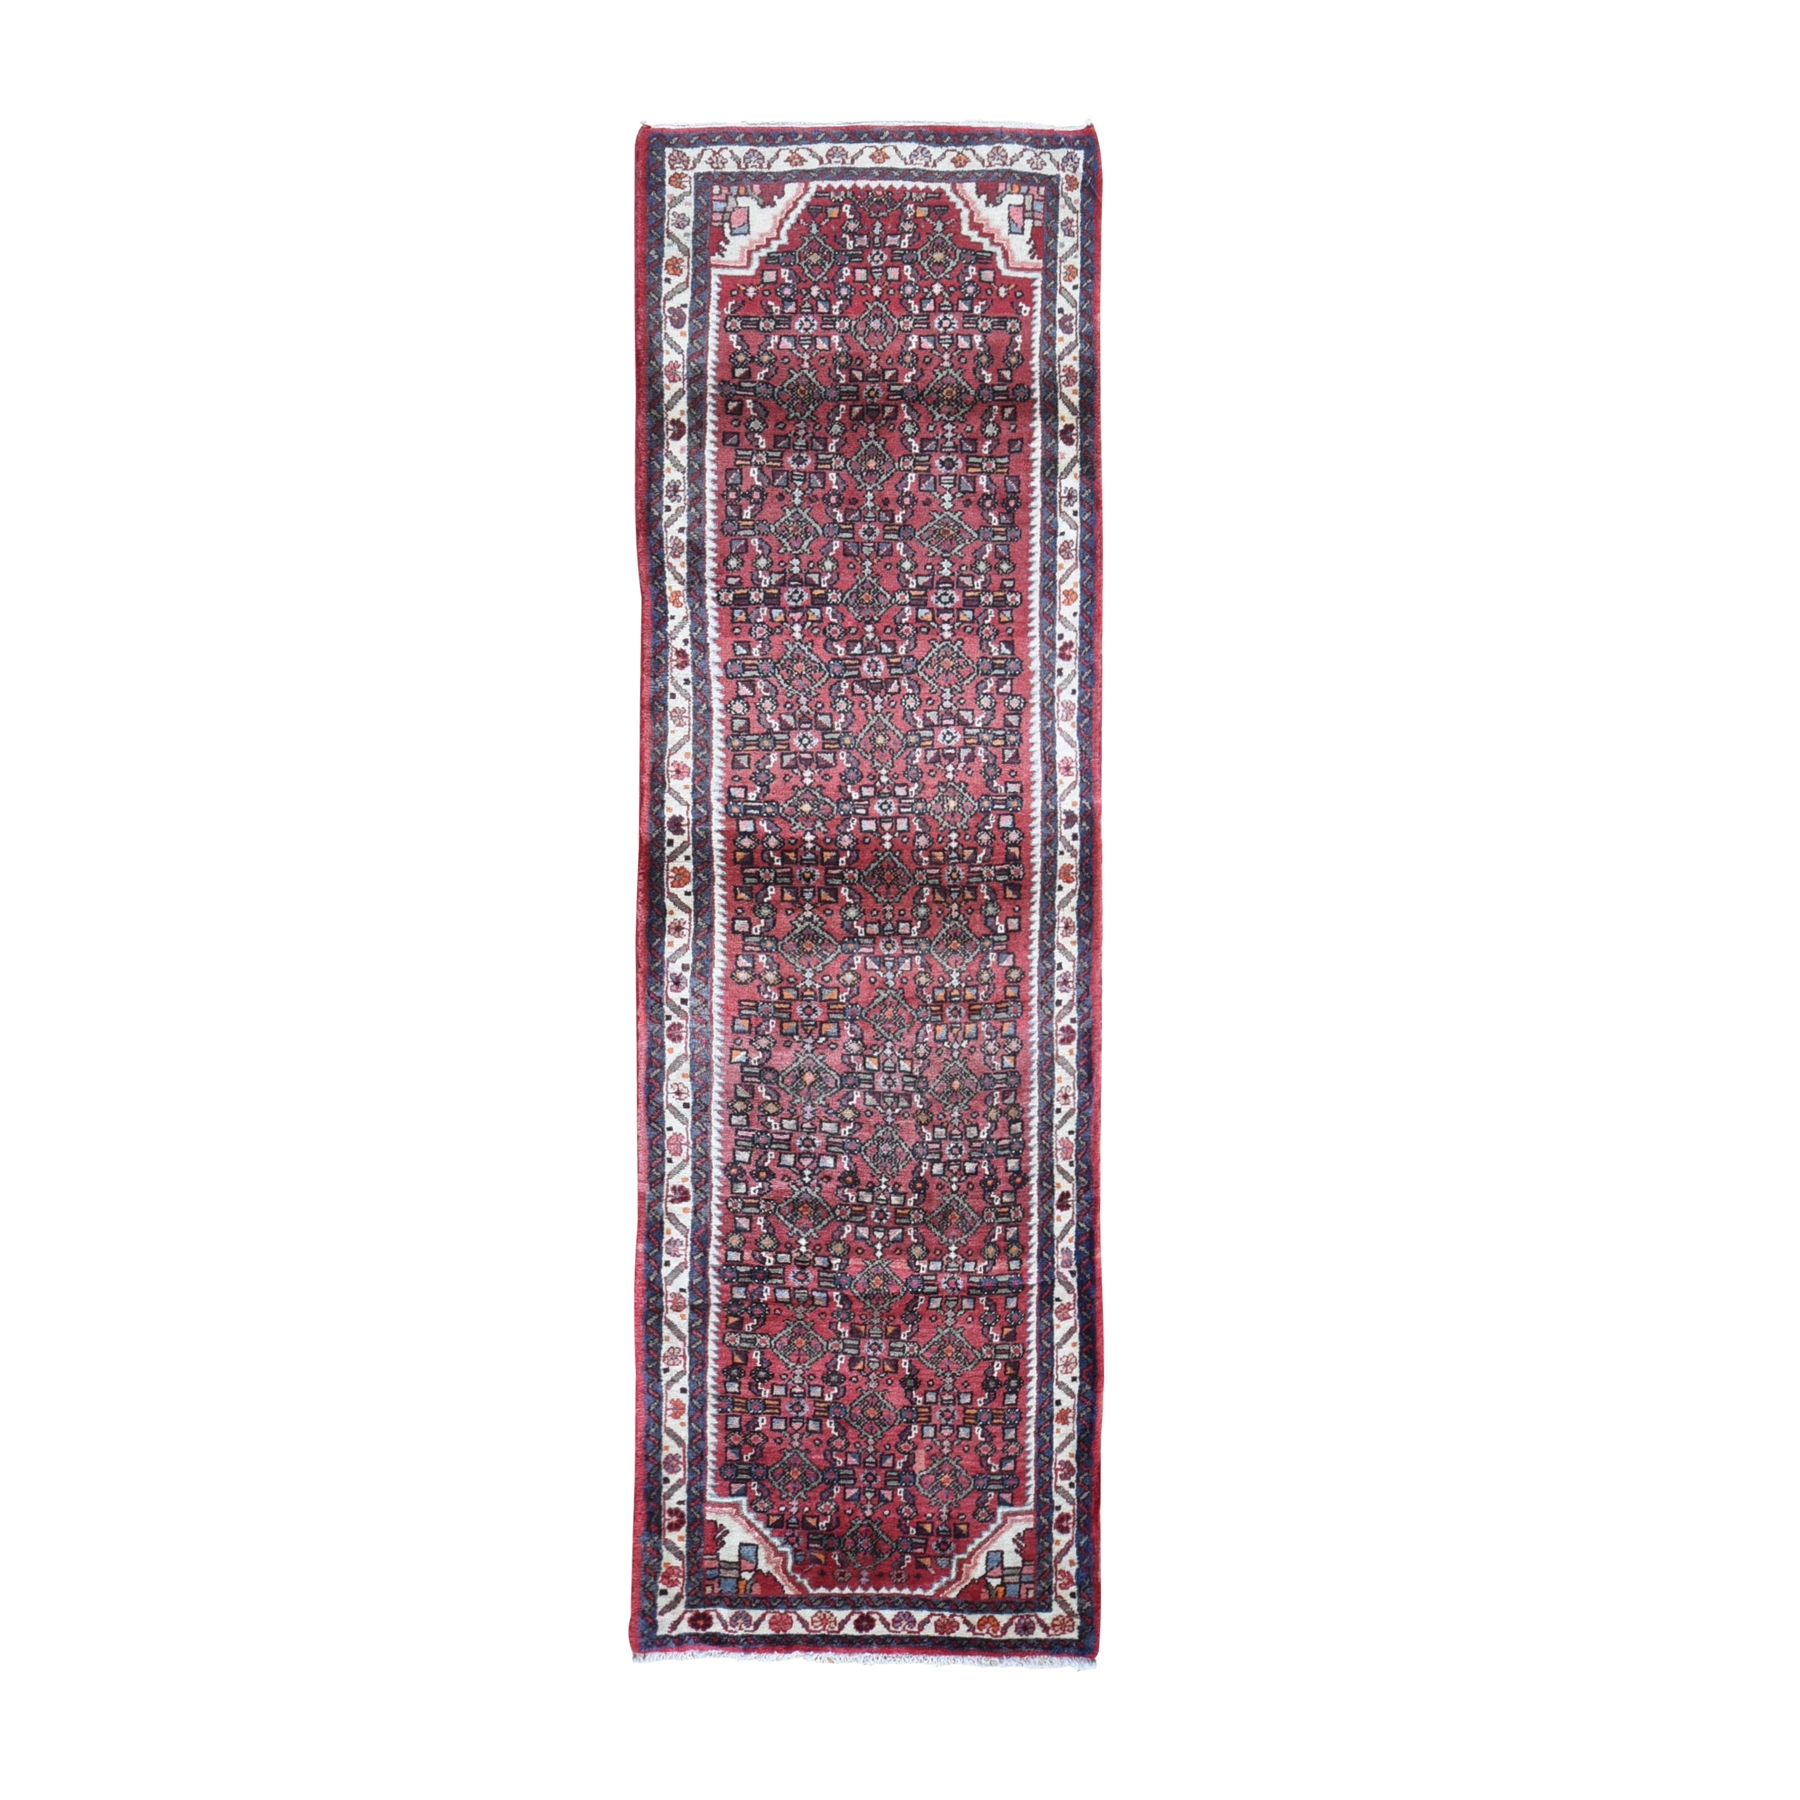 "3'x9'9"" Pure Wool Vintage Persian Hamadan Wide Runner Fish Herat All Over Design Red Hand Knotted Oriental Rug"